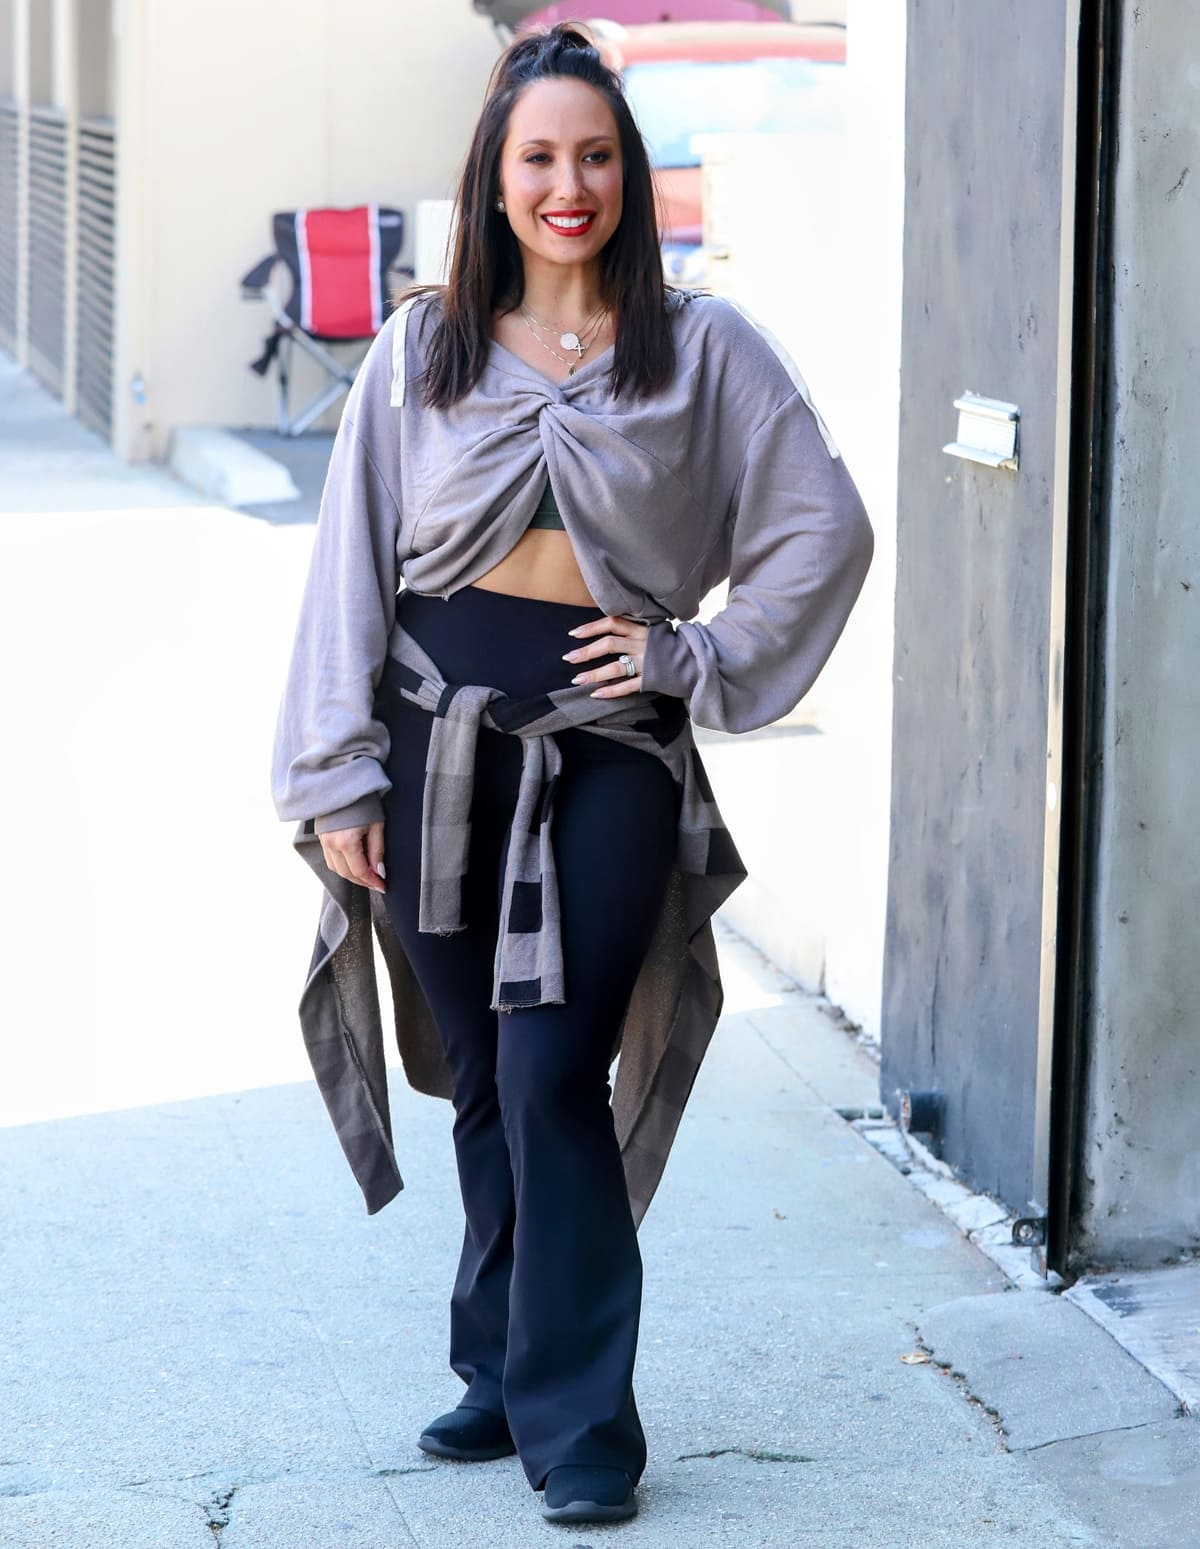 Cheryl Burke arrives for Dancing With the Stars (DWTS) rehearsals